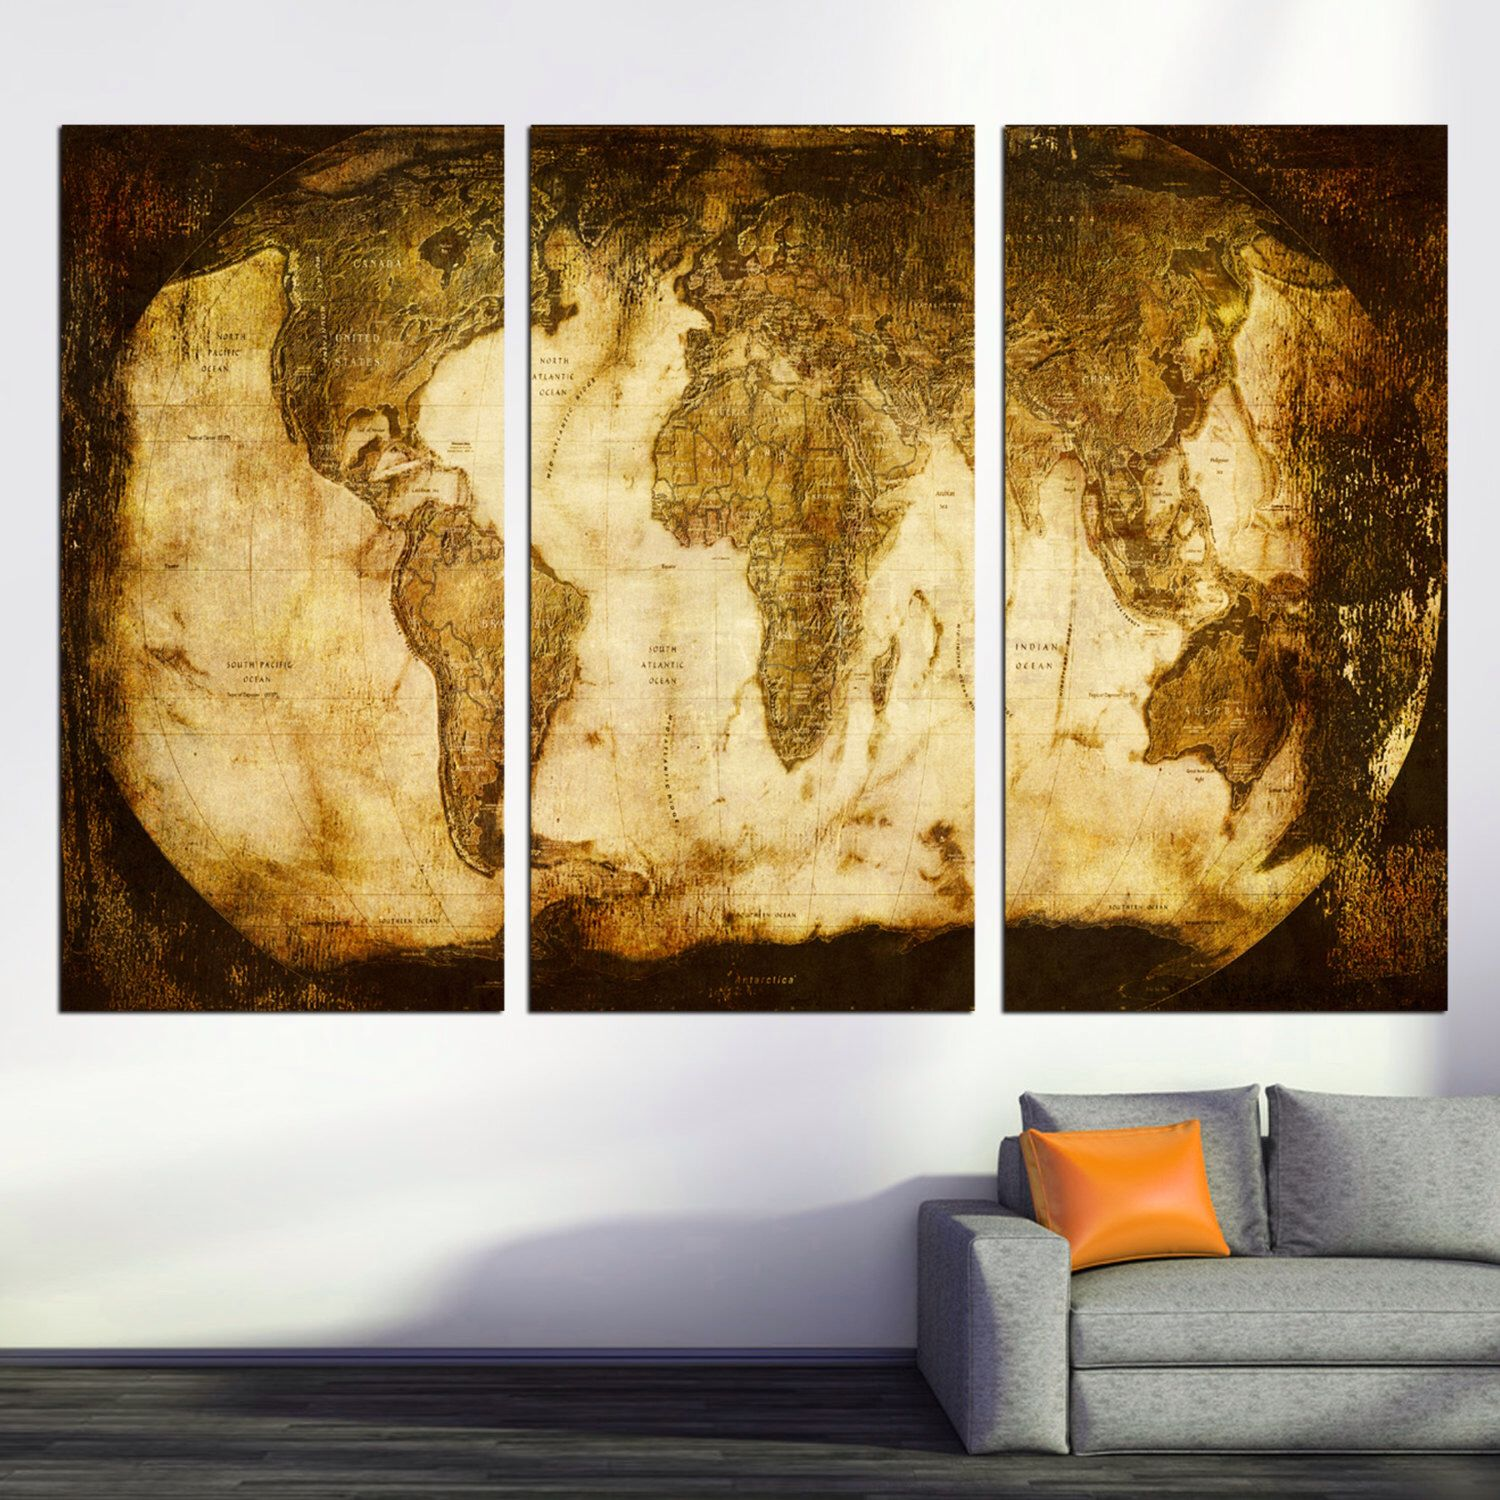 rustic world map 3 panel split triptych canvas print stretched on deep frames art for homeoffice wall decor interior design by canvasquest on etsy